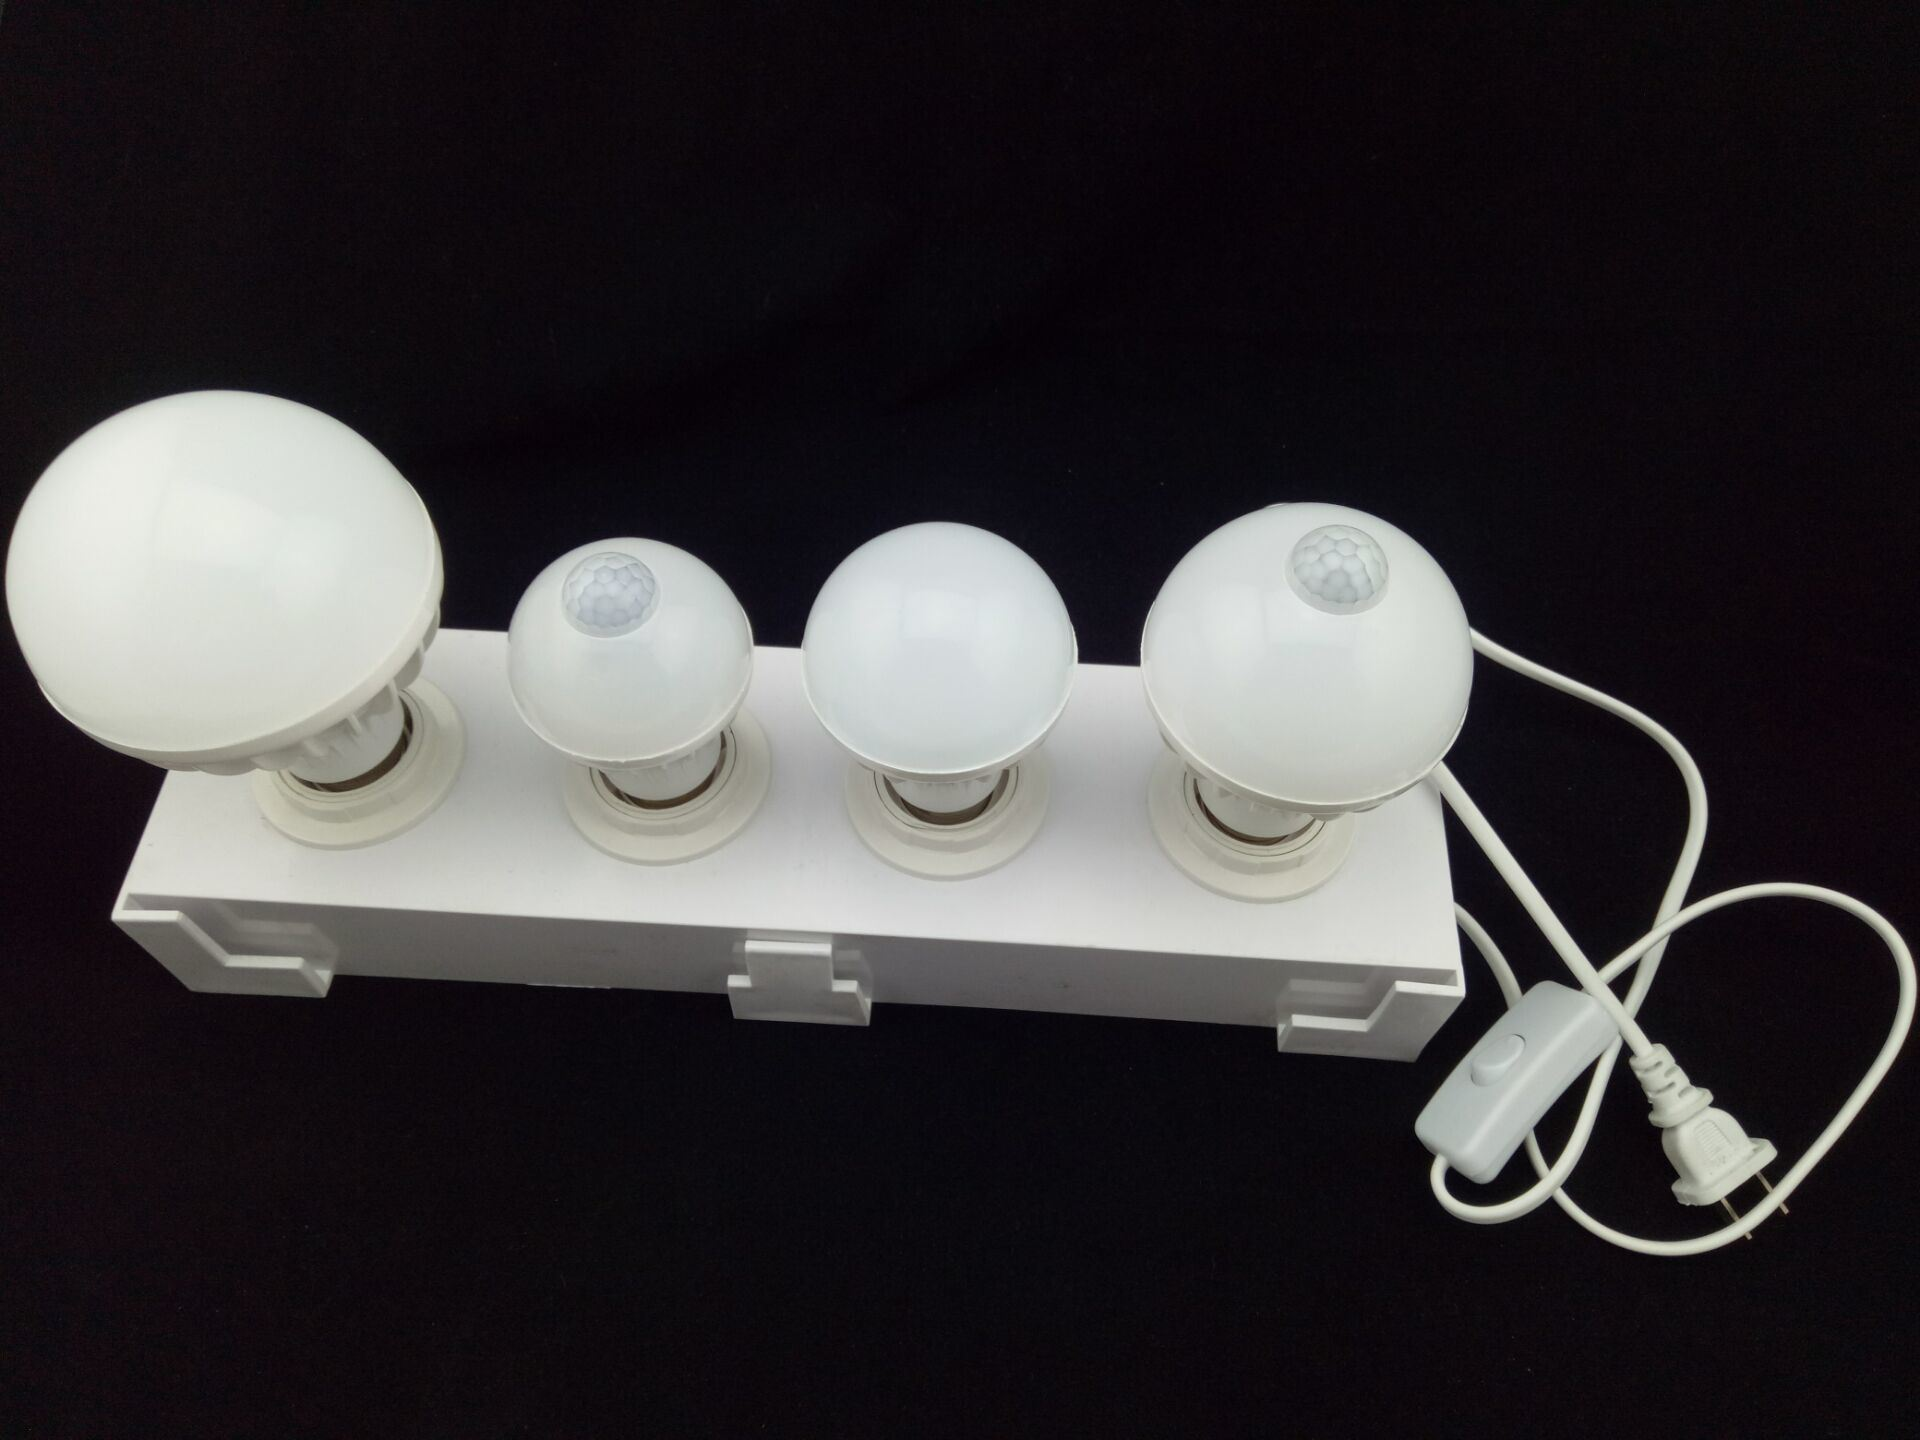 E27 E14 B22 LED Emergency Lighting, Sound Control Bulb pictures & photos